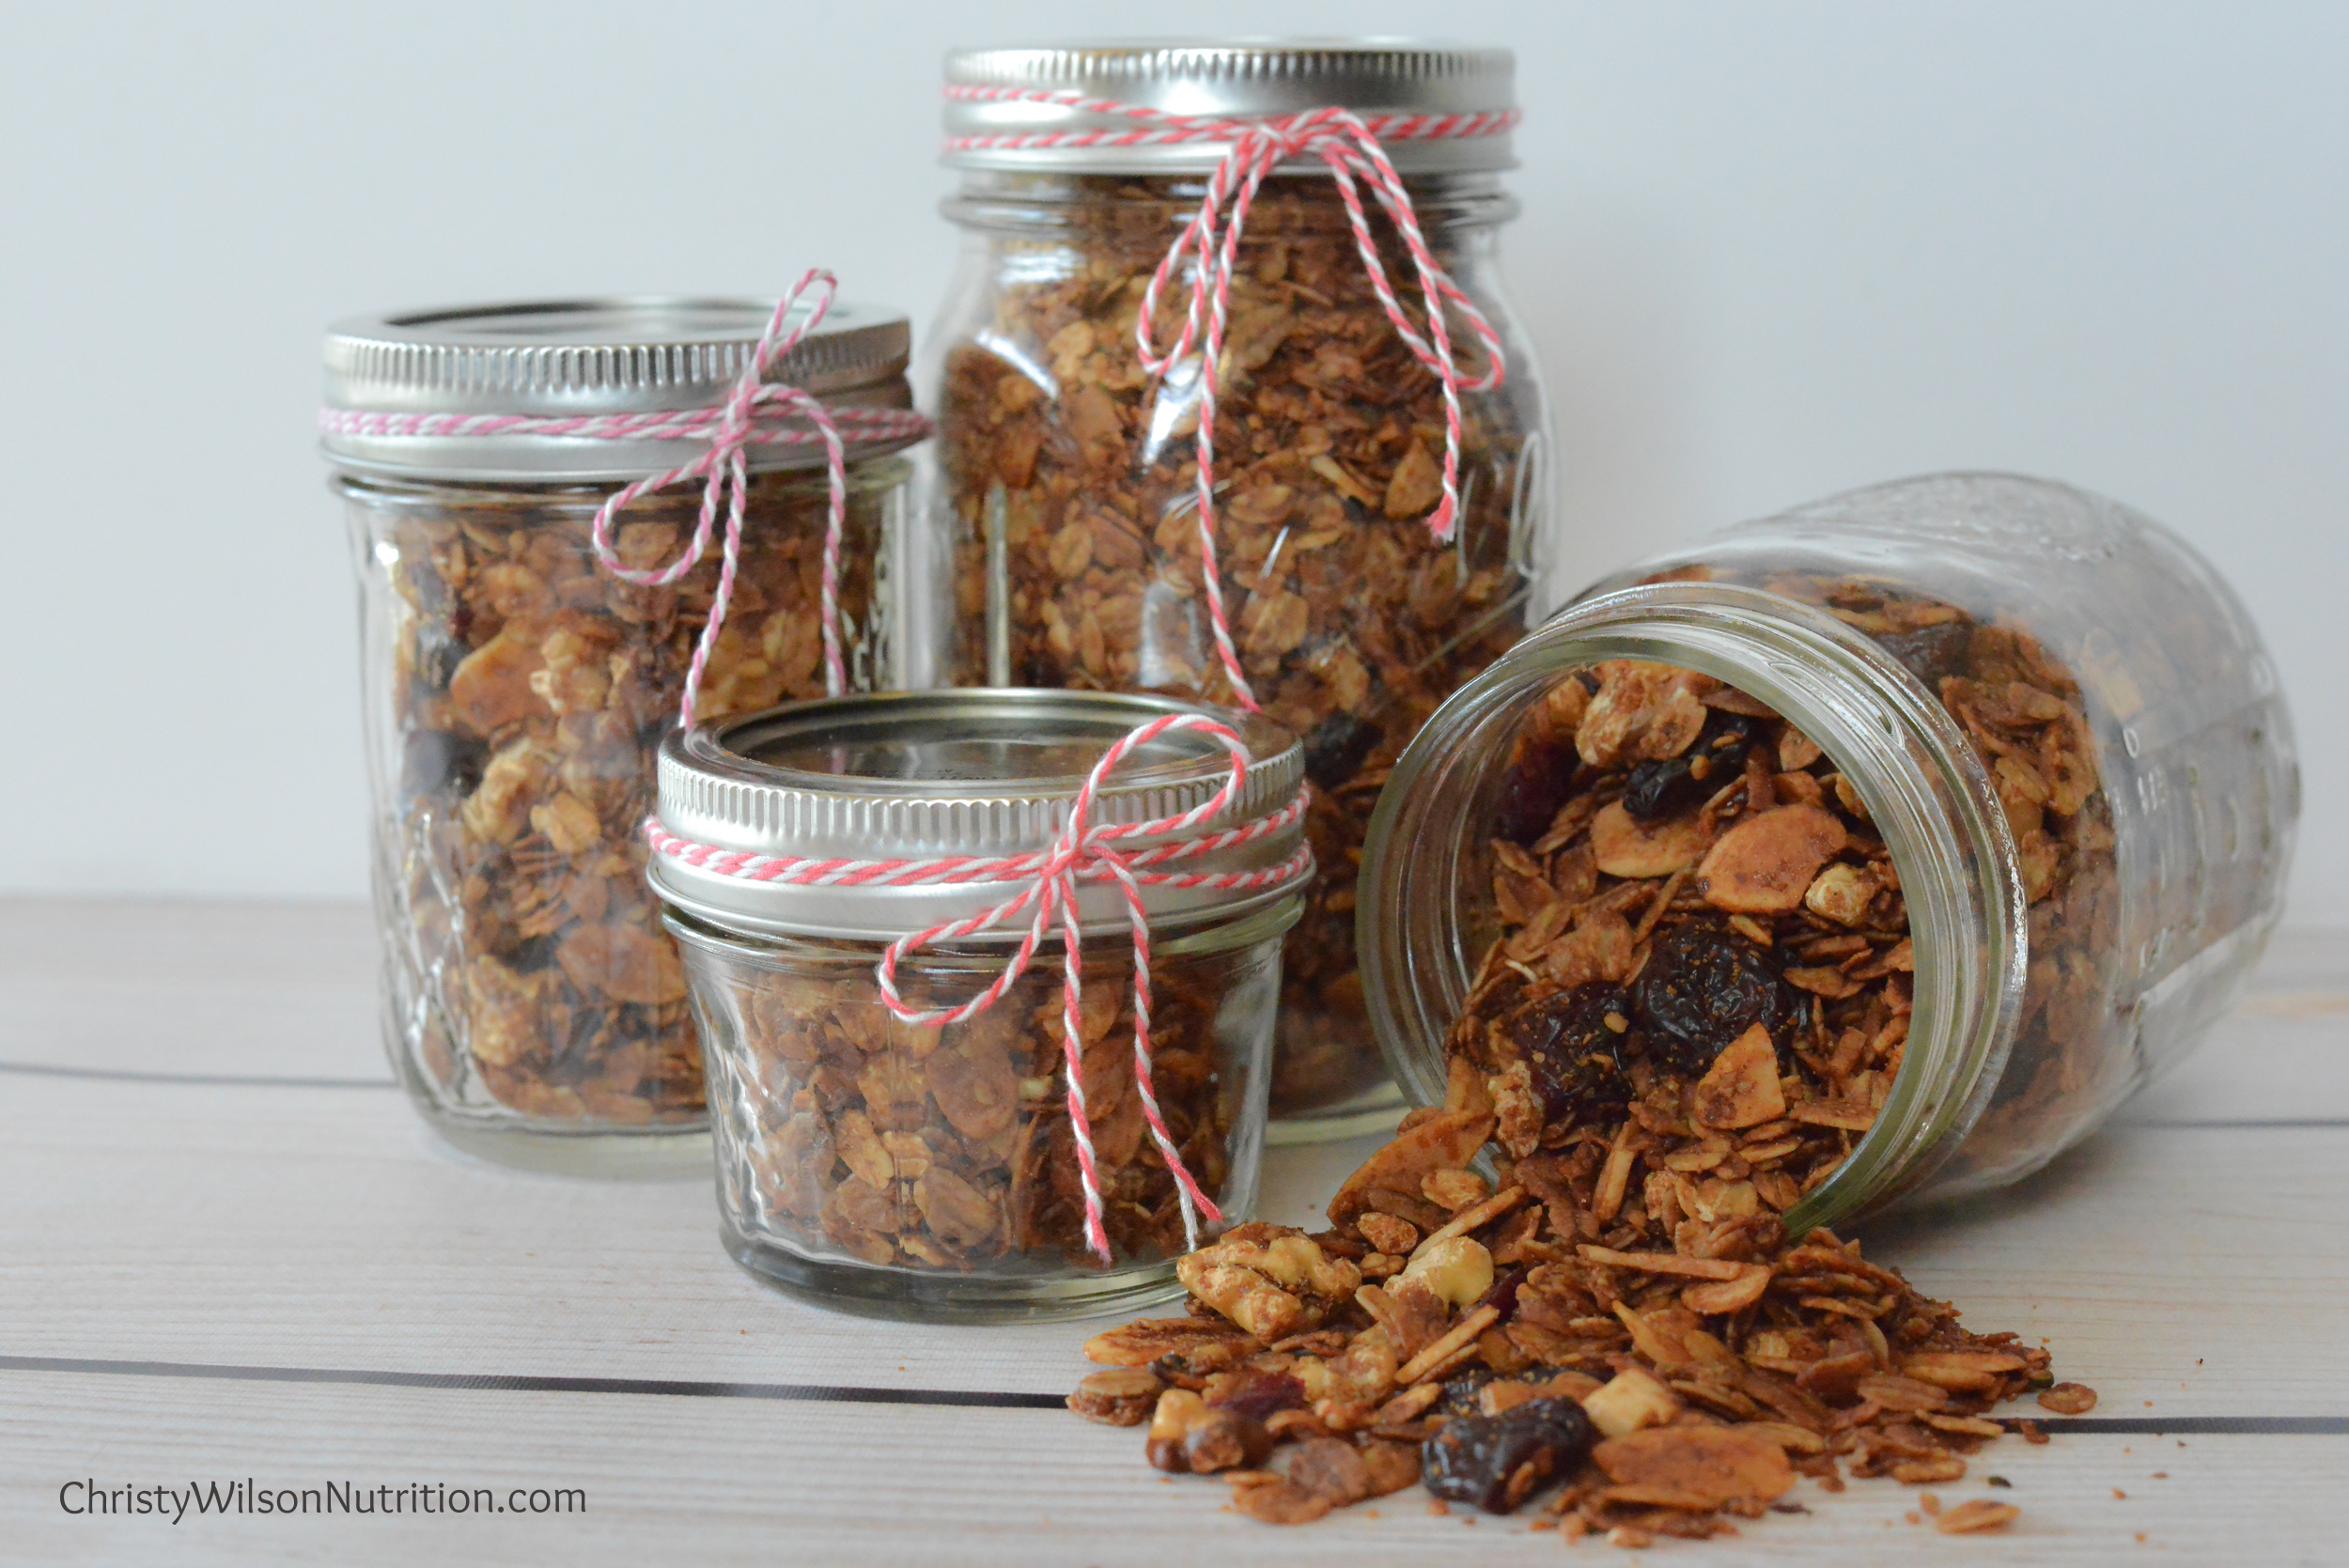 Gifting homemade granola makes a beautiful and delicious gift (just ask my parents!).